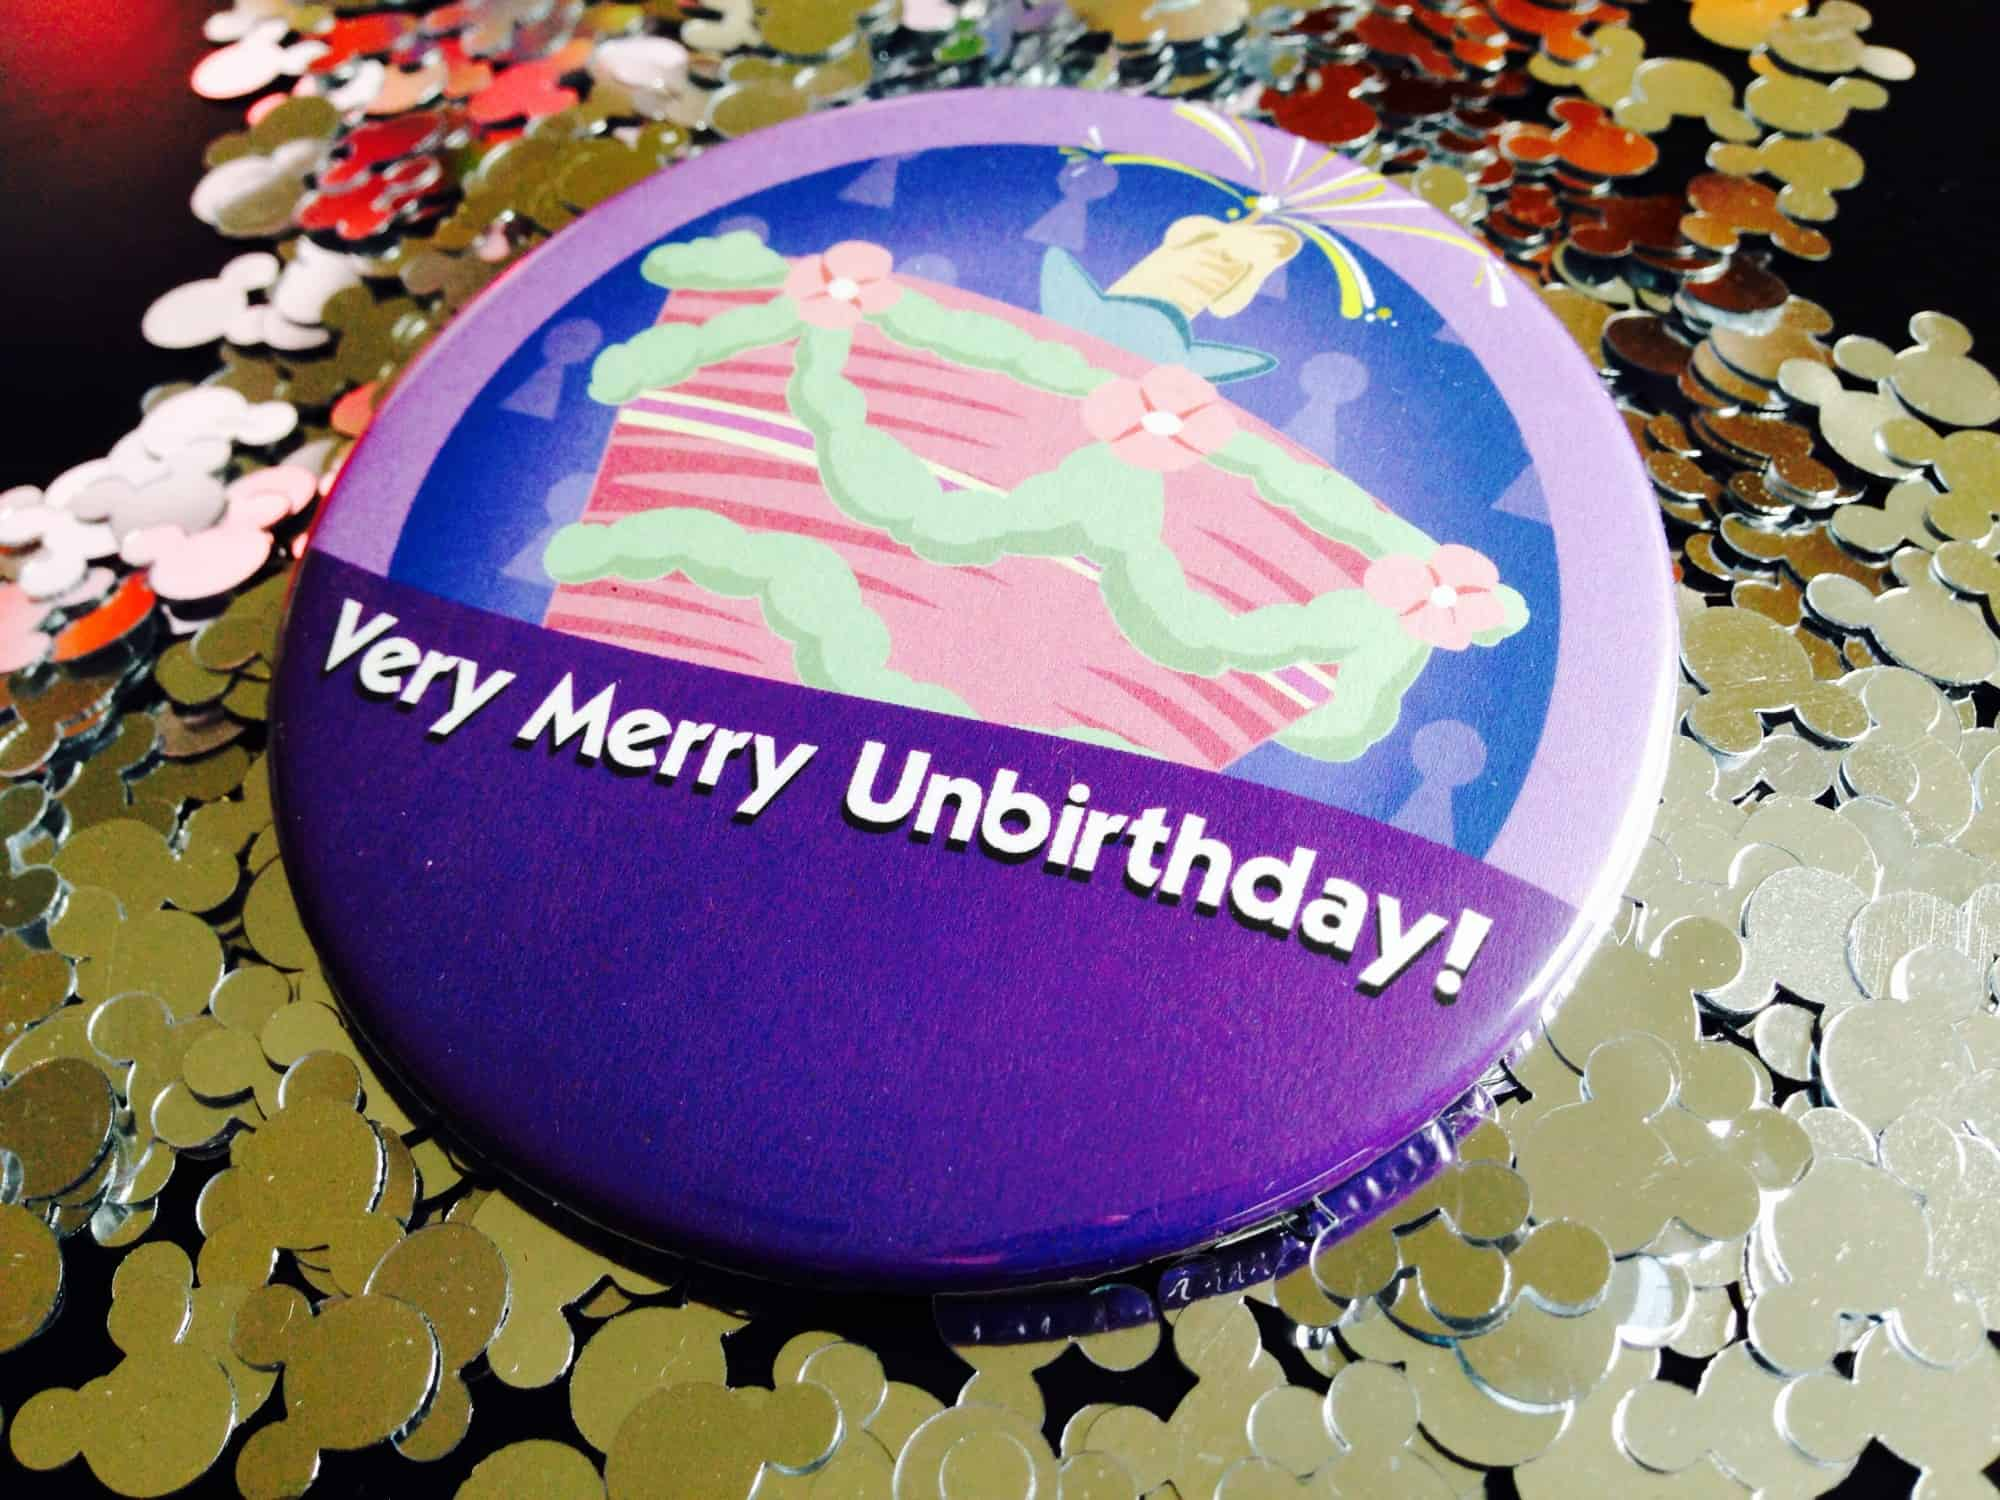 UnBirthday Button